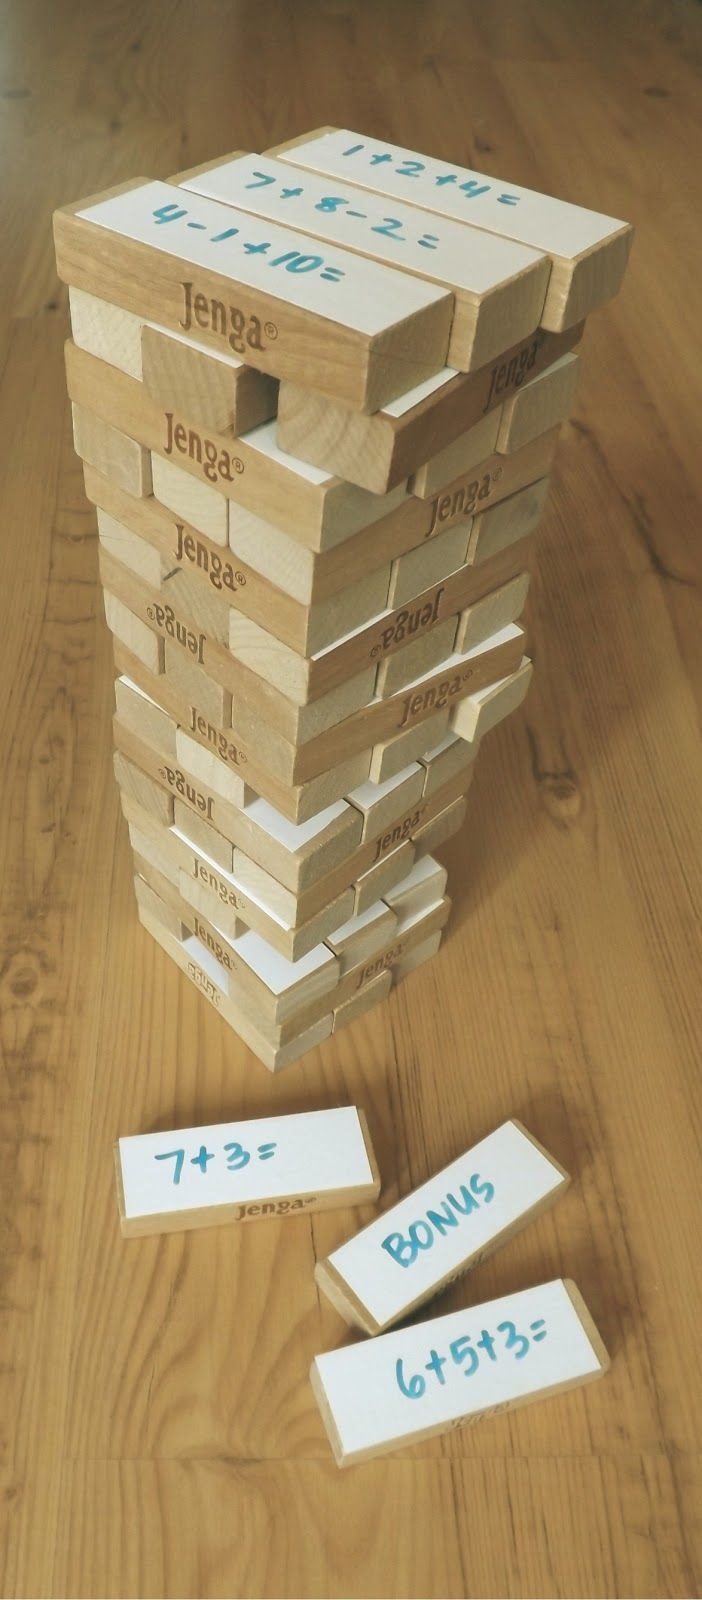 Shake things up at the close of this school year!  Use DIY Jenga to practice and review.